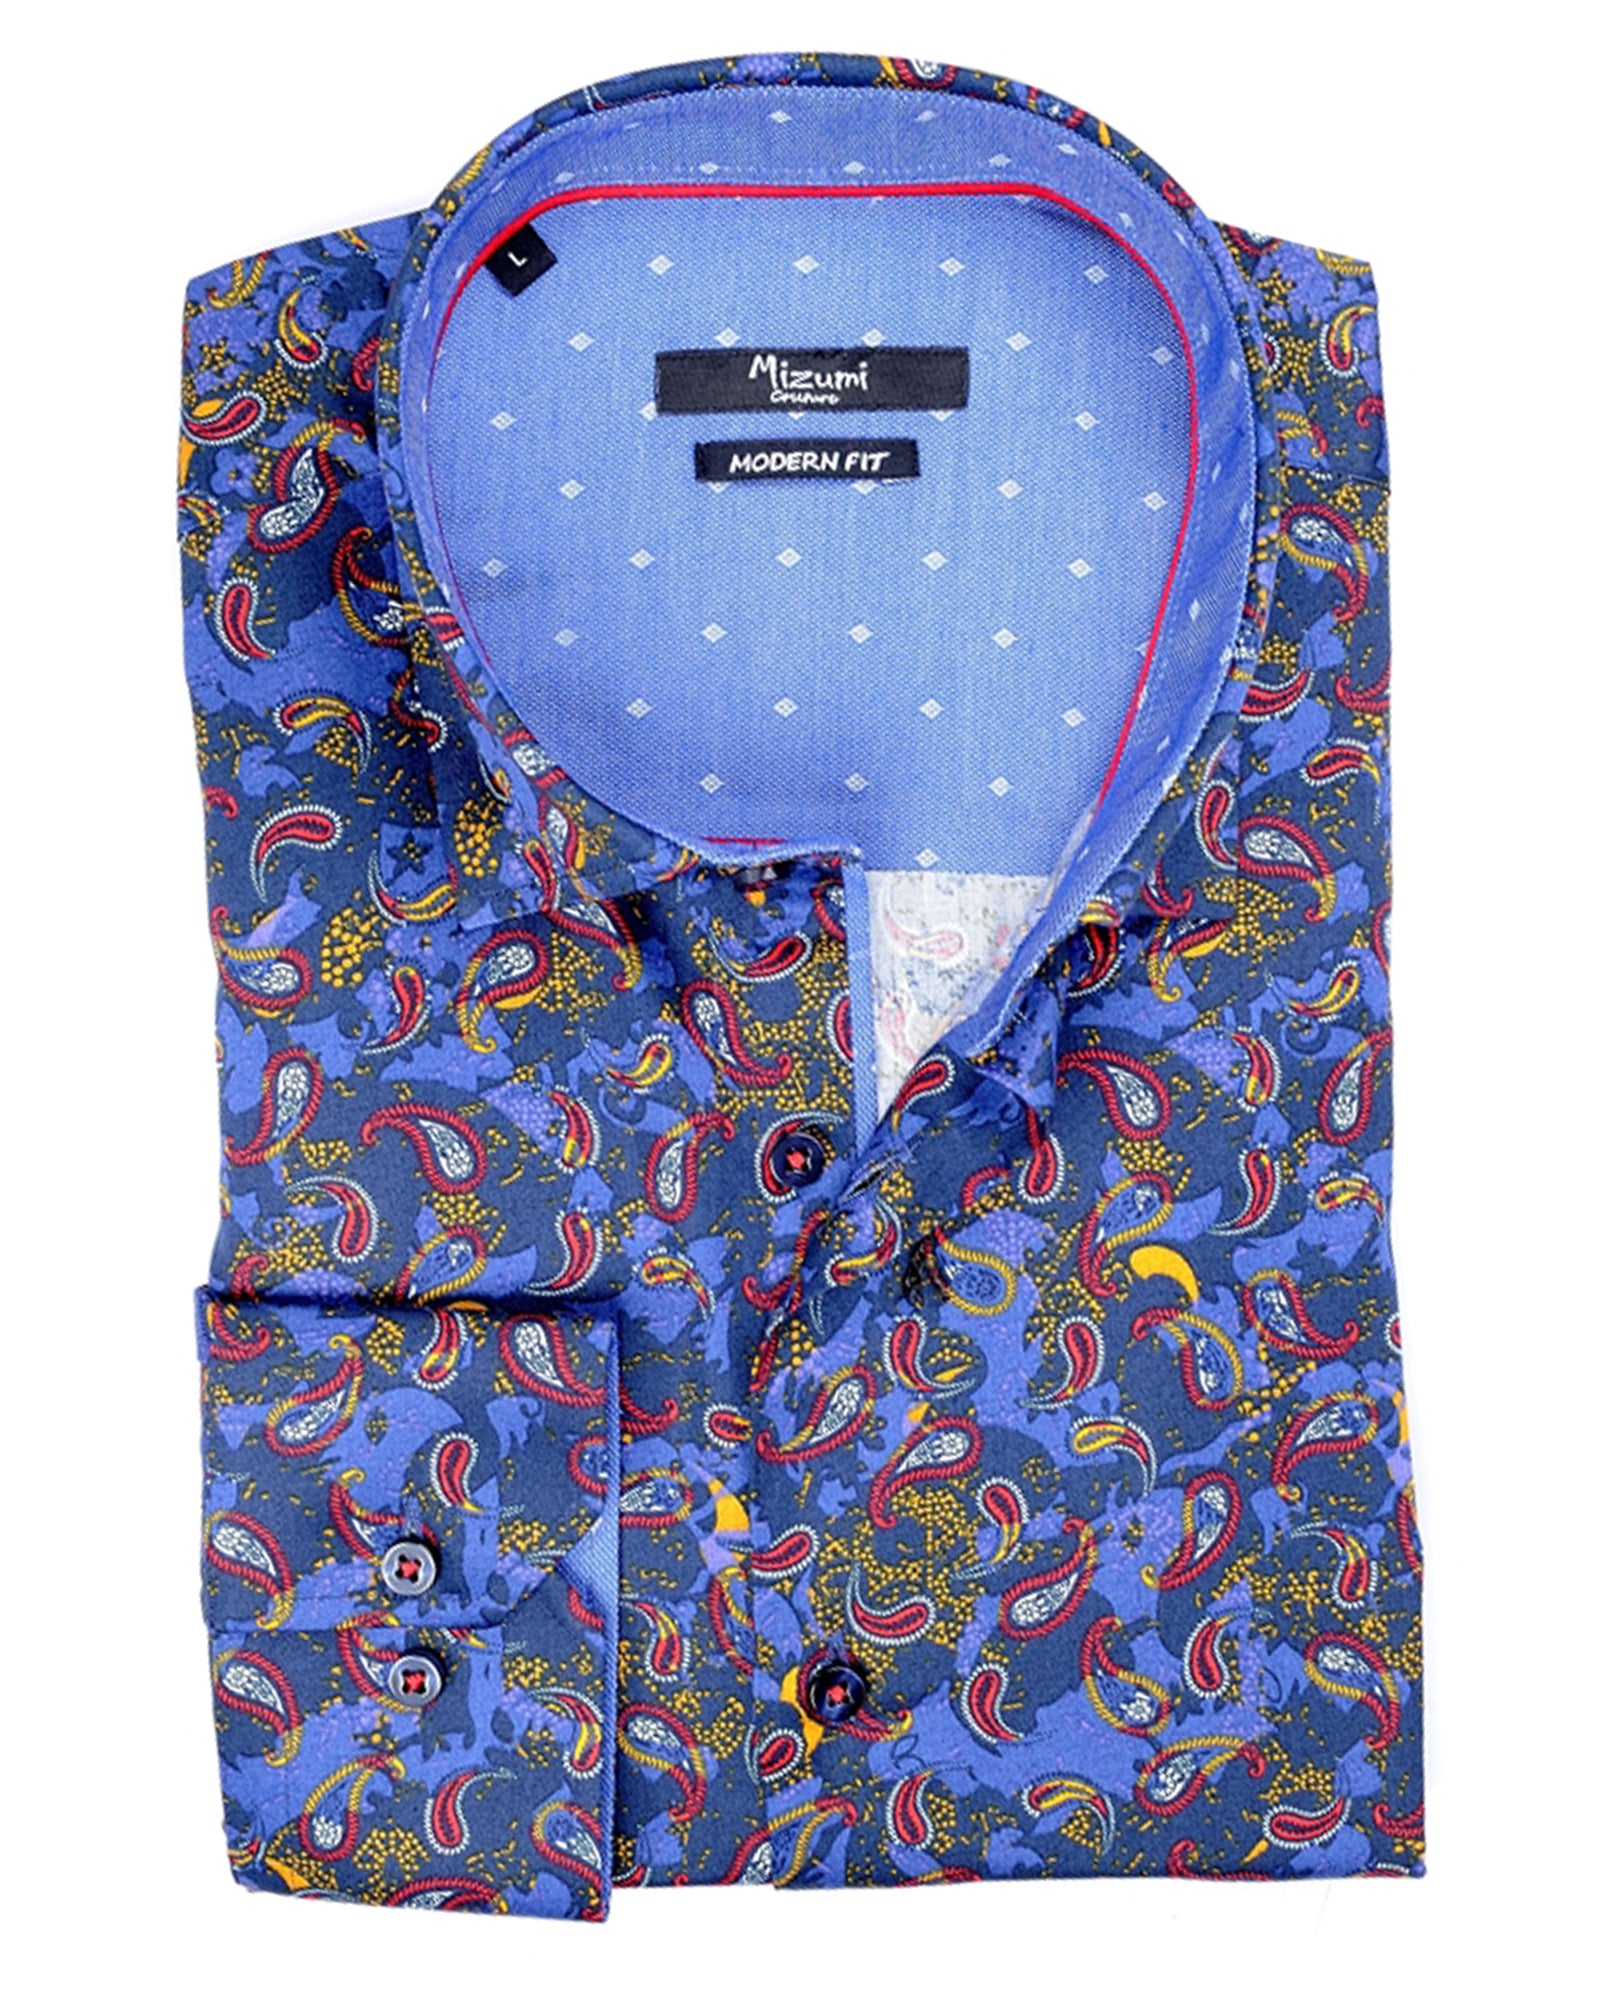 Navy With Multi-Colored Paisley Sport Shirt - Rainwater's Men's Clothing and Tuxedo Rental